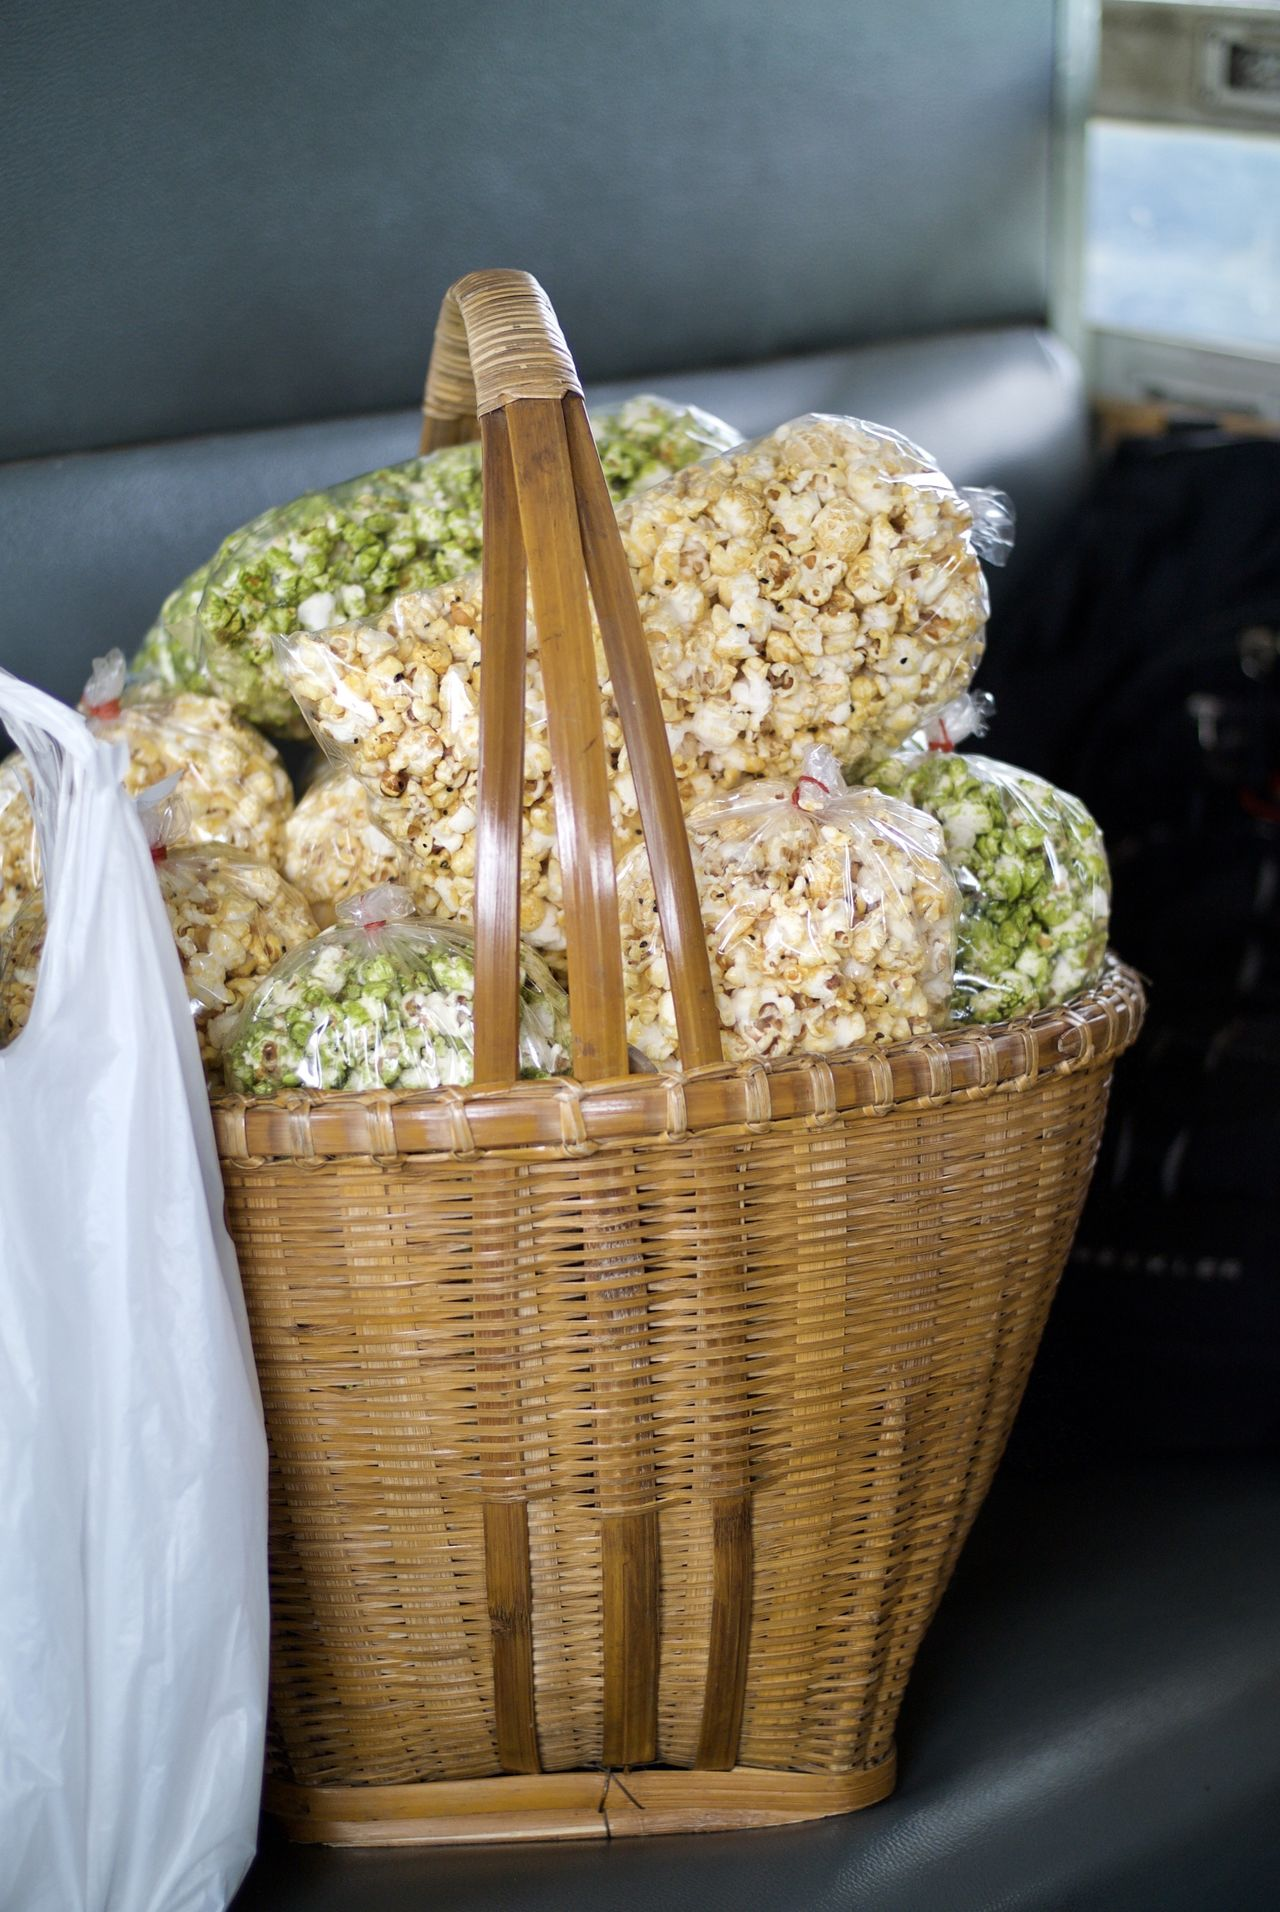 Bamboo Bamboo Basket Basket Close-up Day Food Food And Drink Freshness Indoors  No People Popcorn Ready-to-eat Train - Vehicle